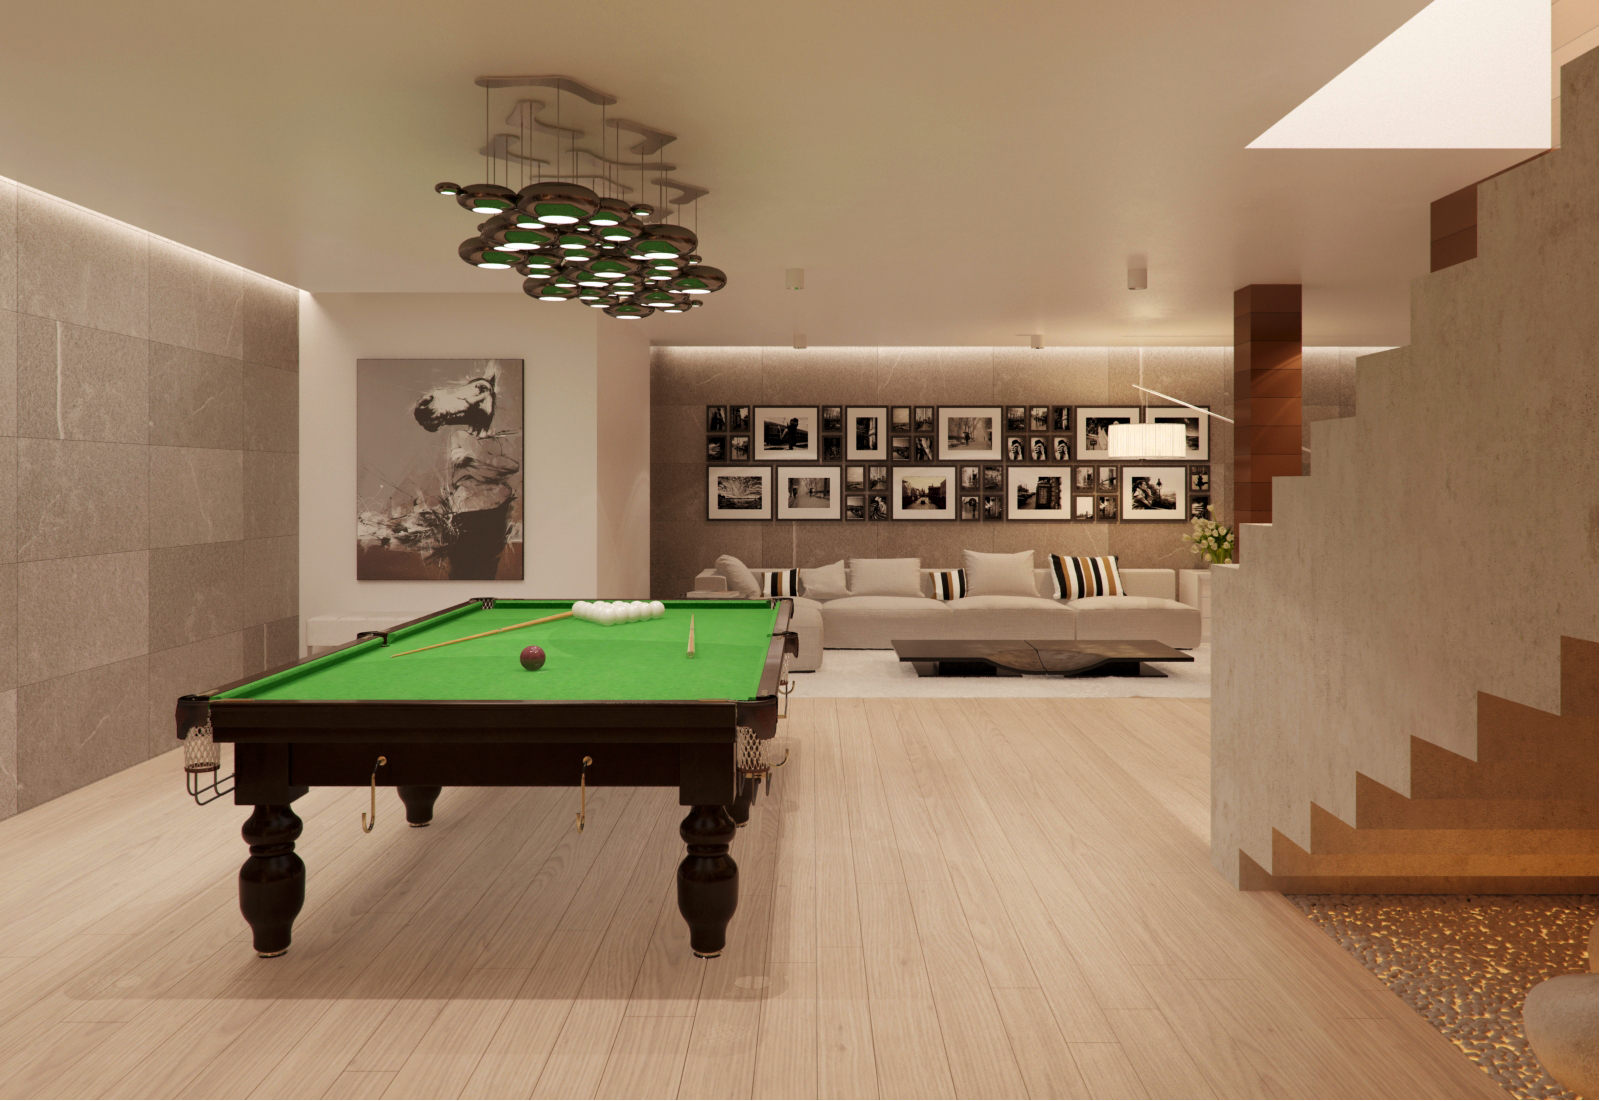 Sleekprivatepoolroom Interior Design Ideas - Sleek pool table